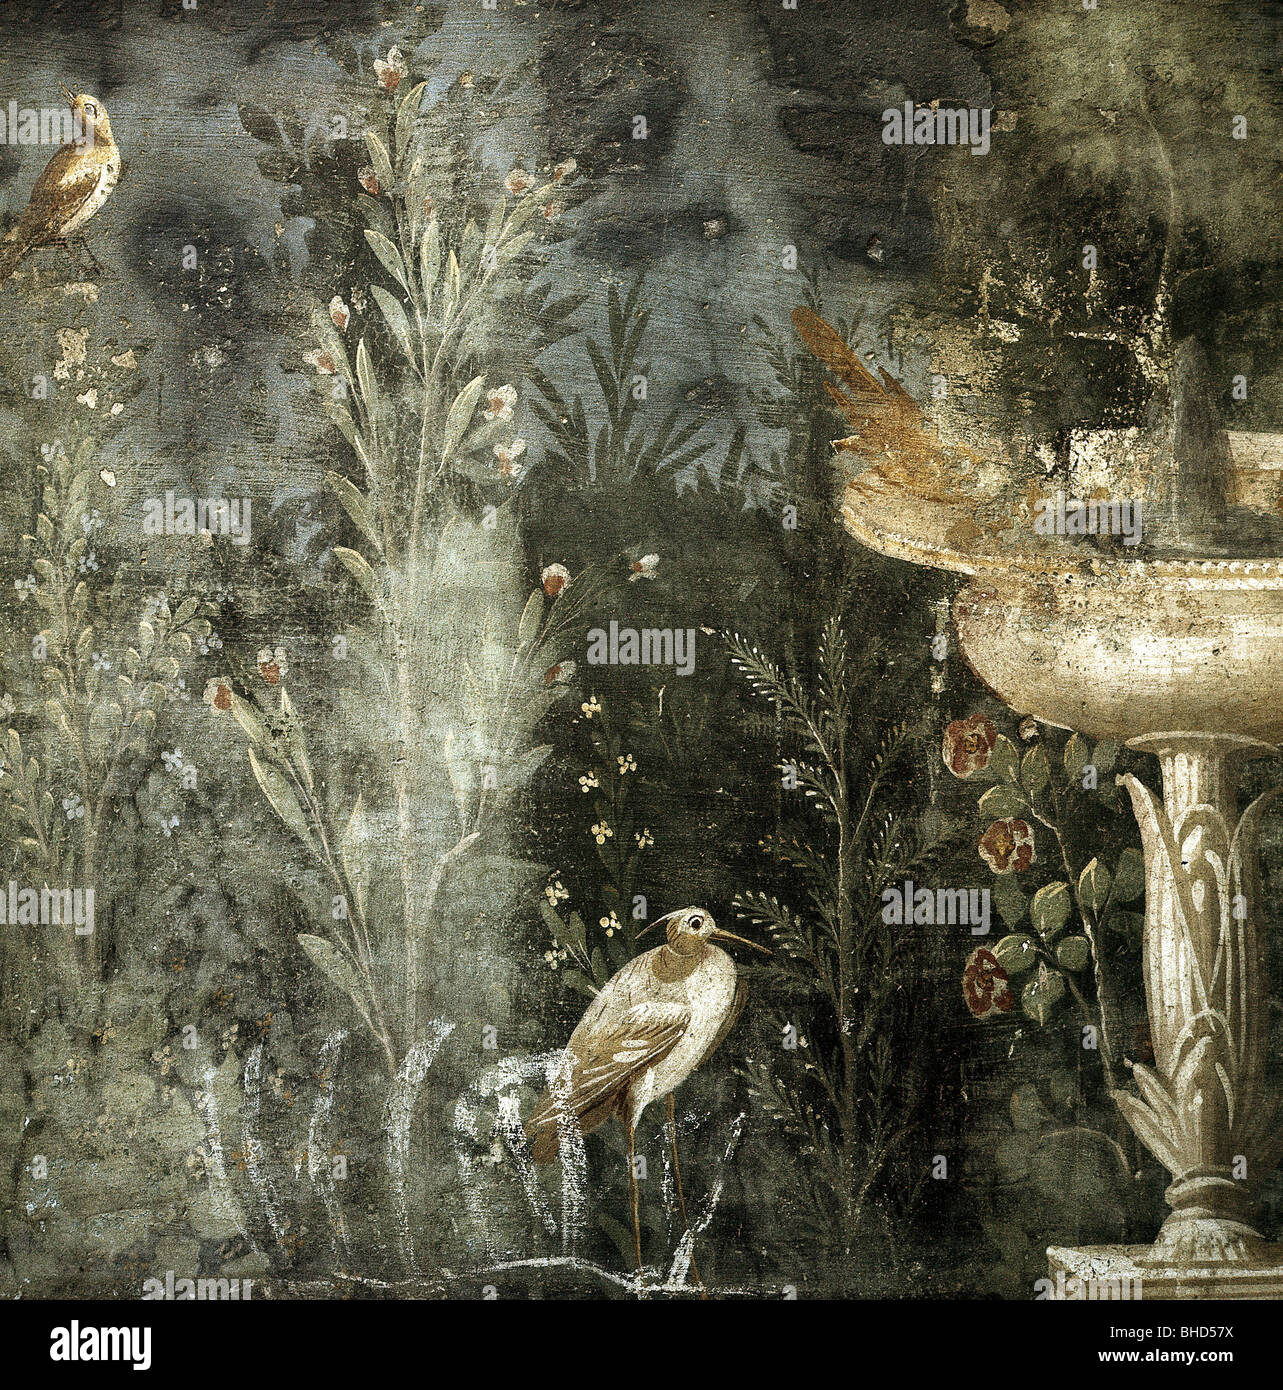 fine arts, Ancient World, Roman Empire, Pompeii, detail from a fresco, garden scene, House of Venus, Italy, historic, Stock Photo